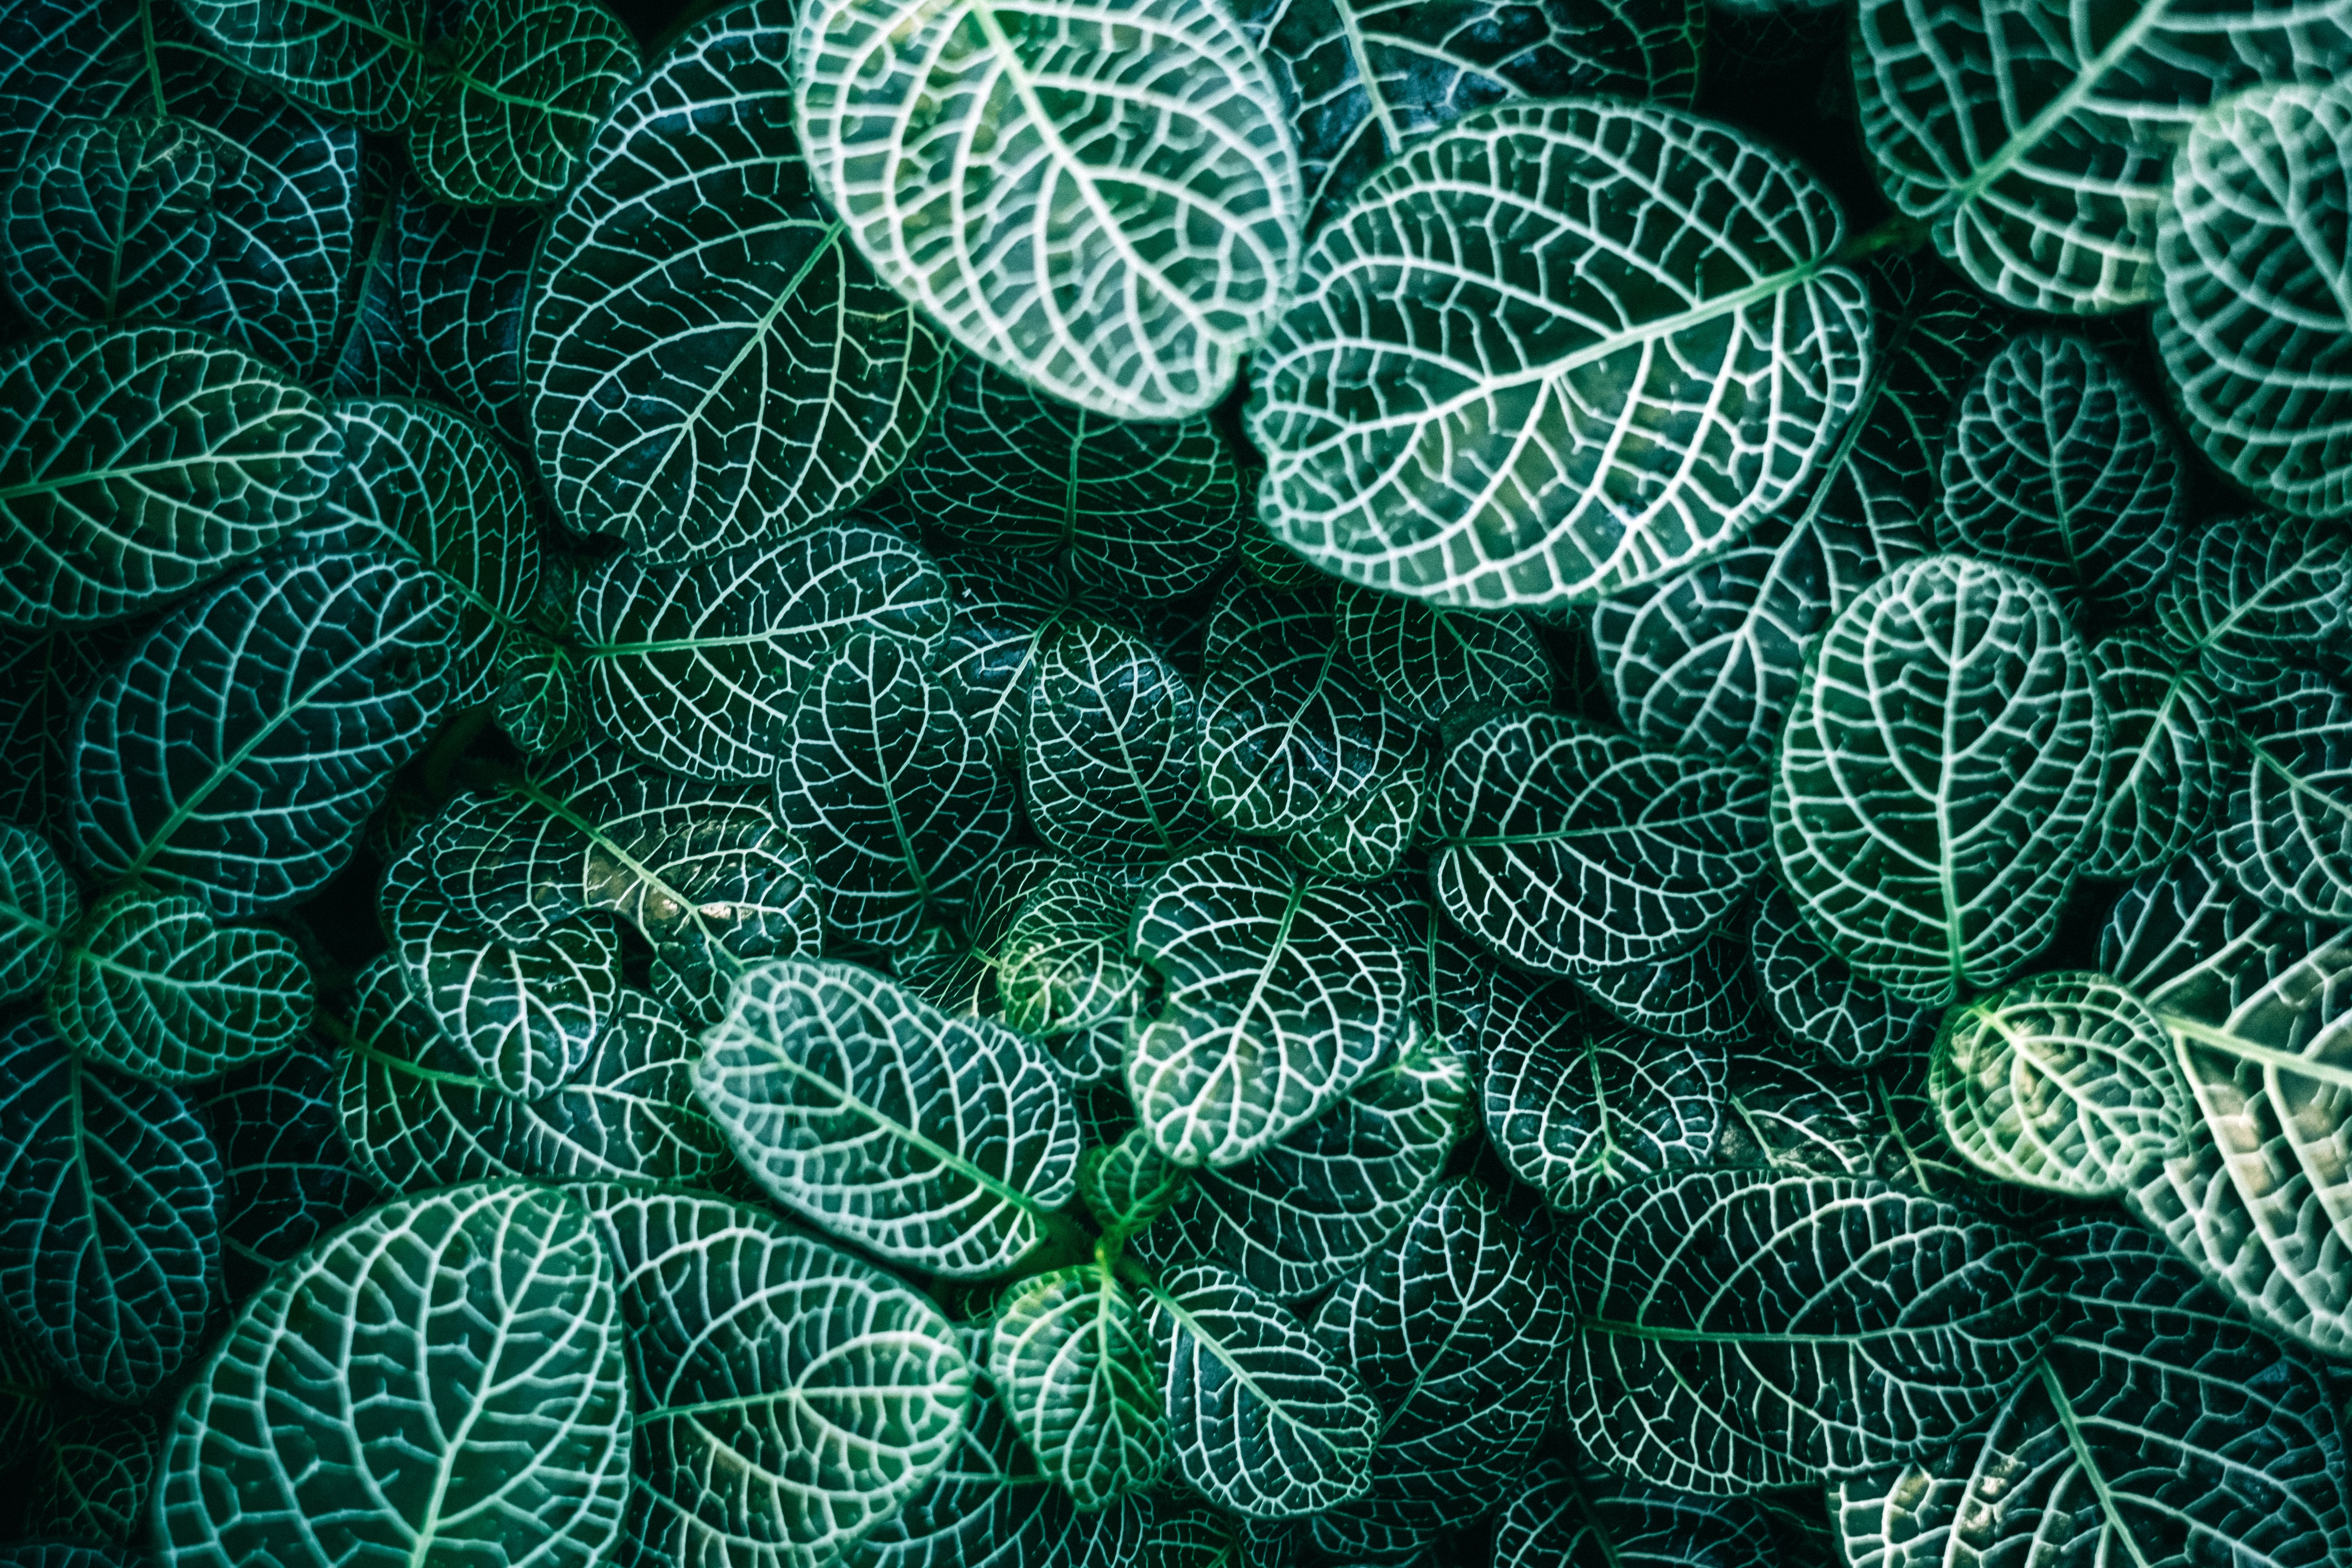 green and white leaf plants